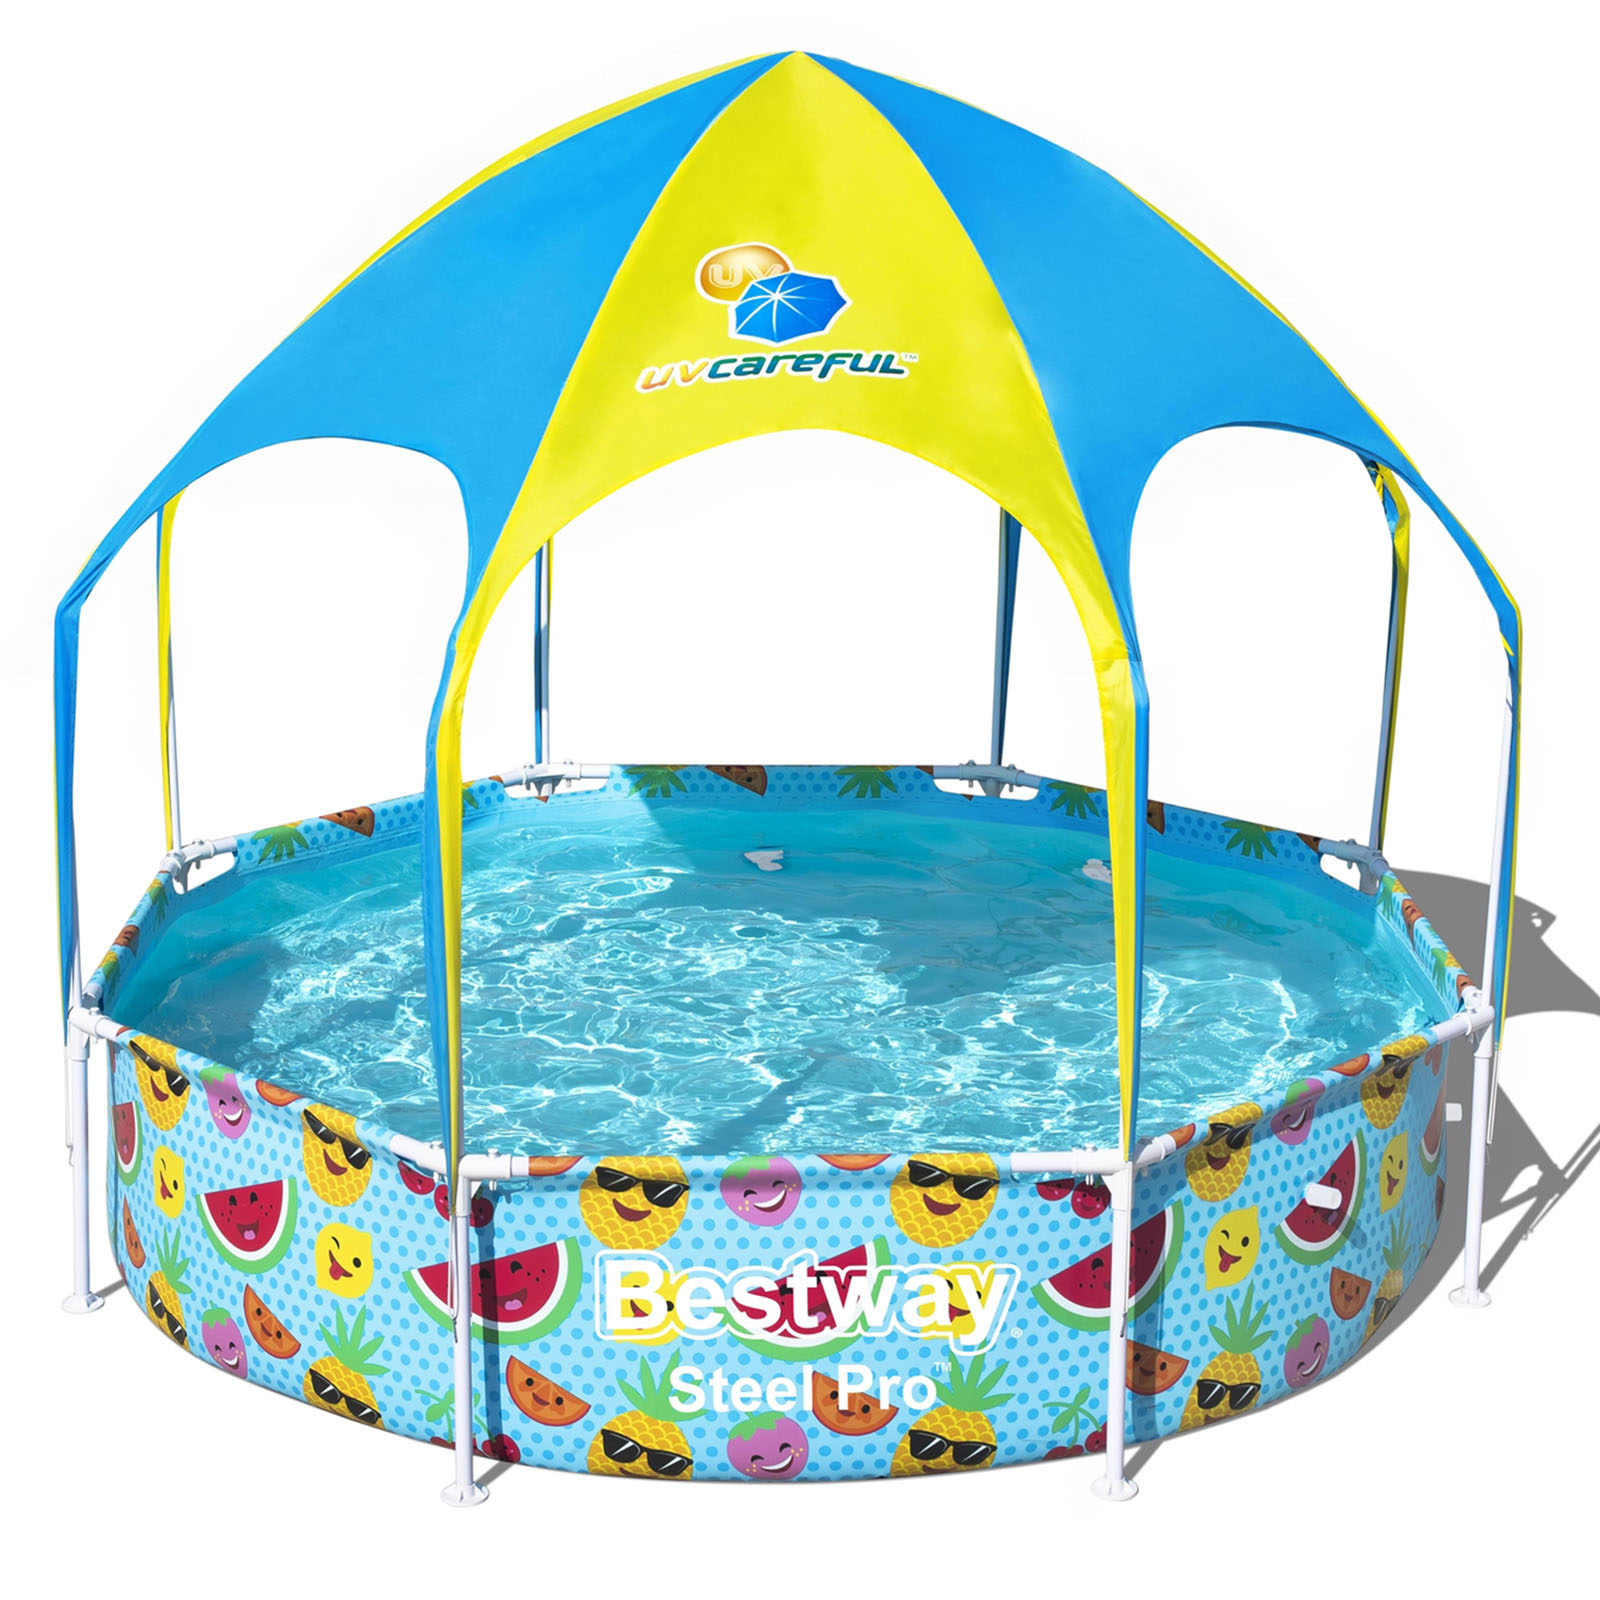 Bestway Above Ground Pool Swimming Pool UV Splash In Shade Kids 2.44m x 51cm